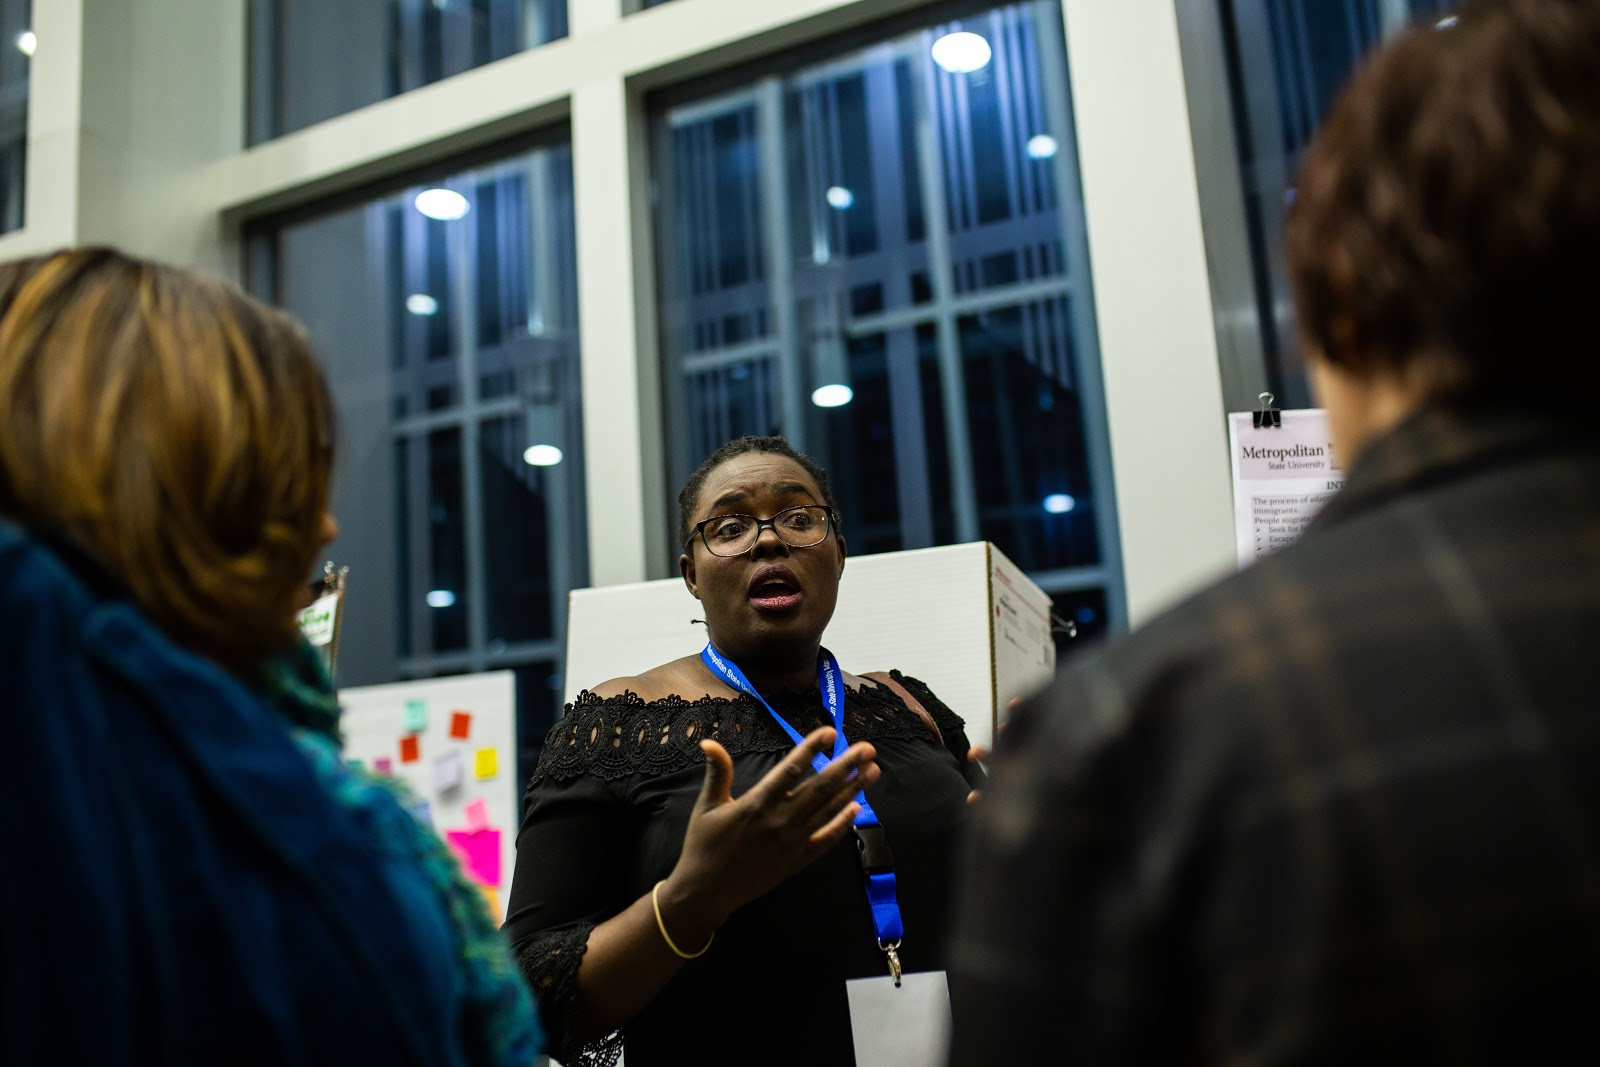 """Doctoral nursing student Survival Mandieka discusses her research, """"Effects of Safe Spaces on Acculturative Stress and Quality of Life in African Young Immigrants,"""" with attendees of the 2018 Student Poster Conference. Photo by Eli Bartz"""